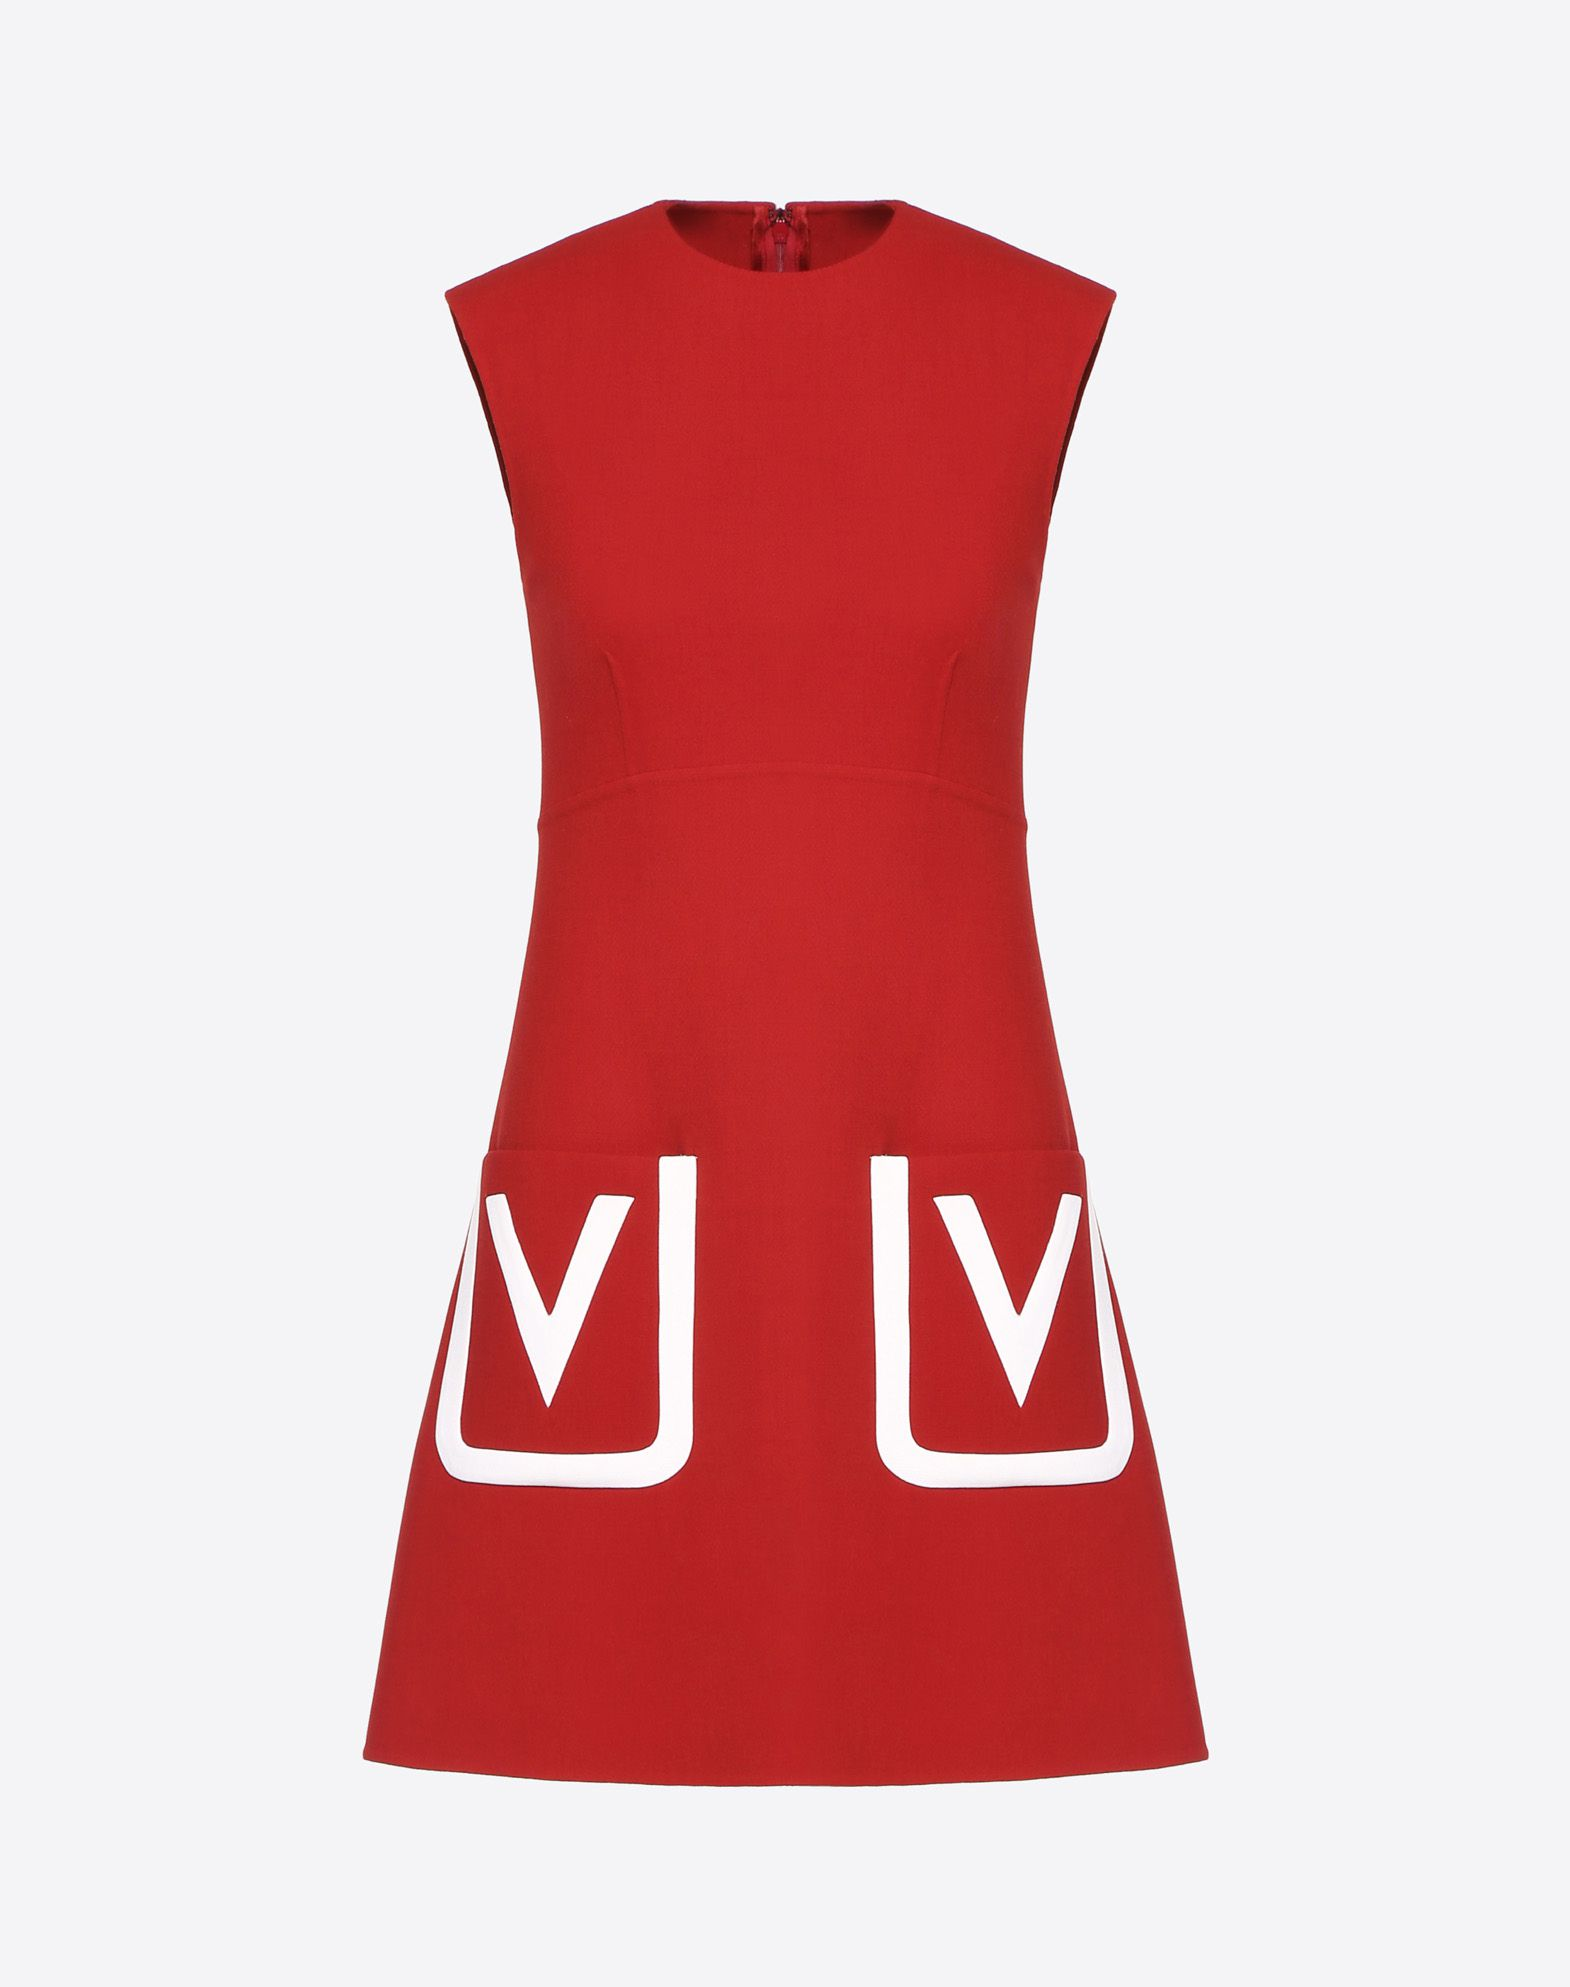 Double Crêpe Wool Dress with Inlay V Logo